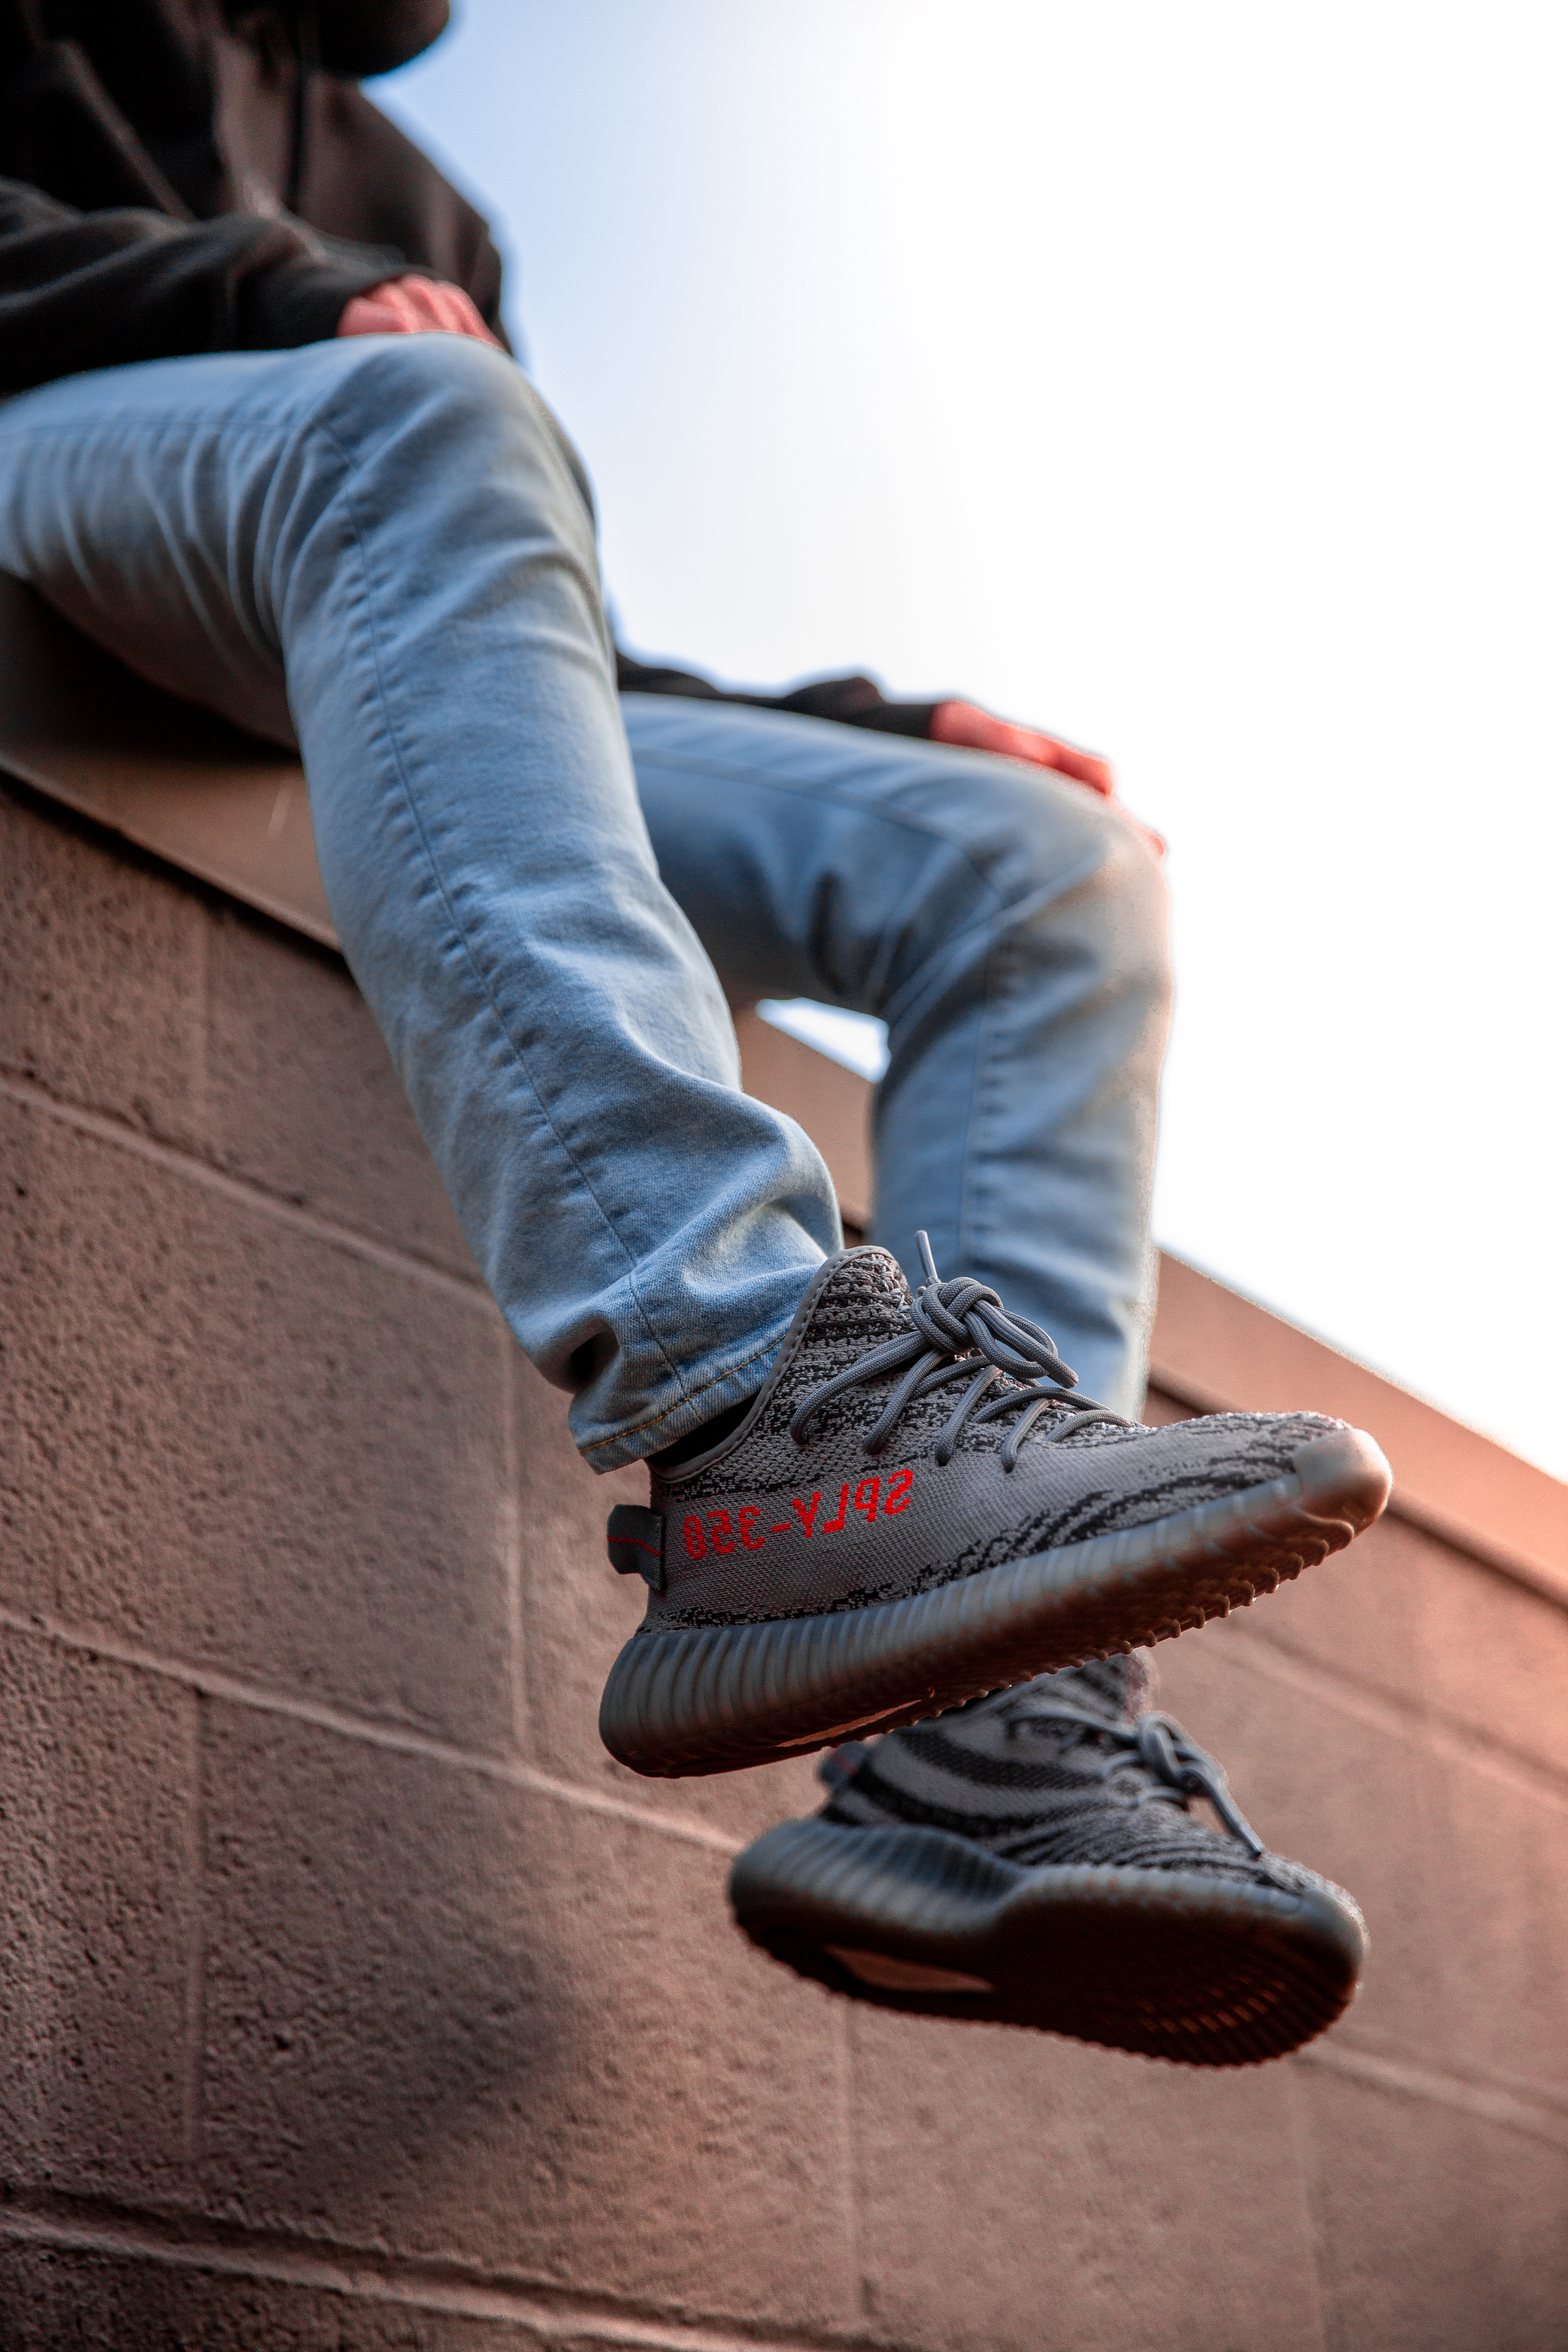 a905f9f74d4cb Person Wearing Adidas Yeezy Boost Shoes